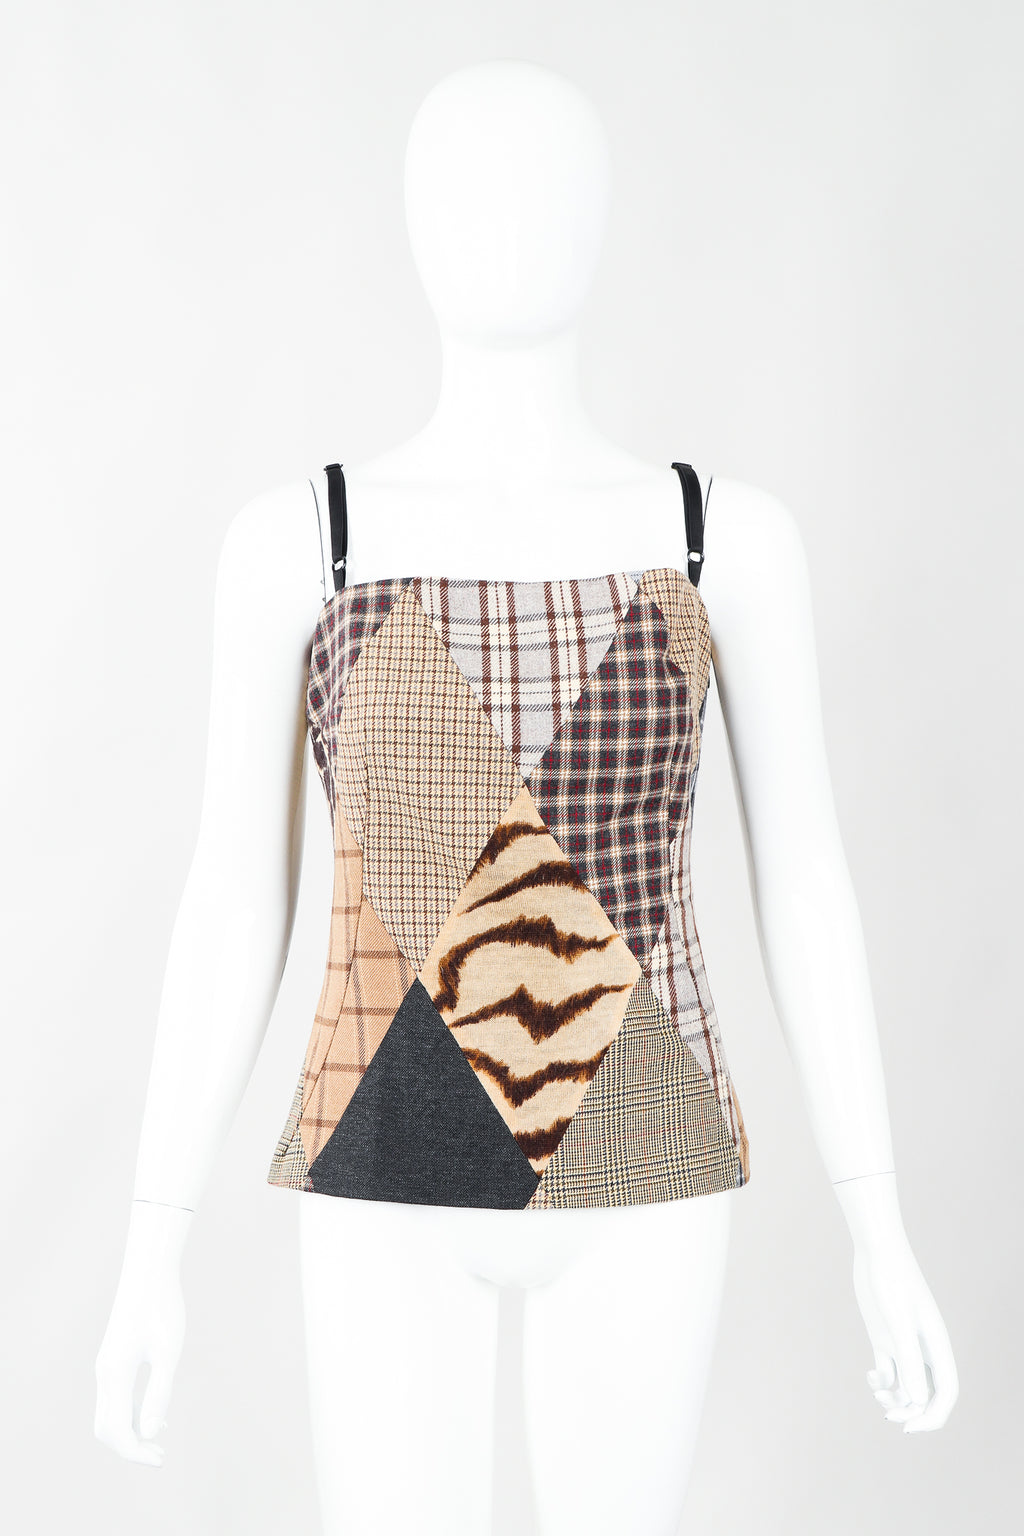 Vintage Dolce & Gabbbana D&G D&G Neutral Plaid Patchwork Bustier Top on Mannequin, Front at Recess